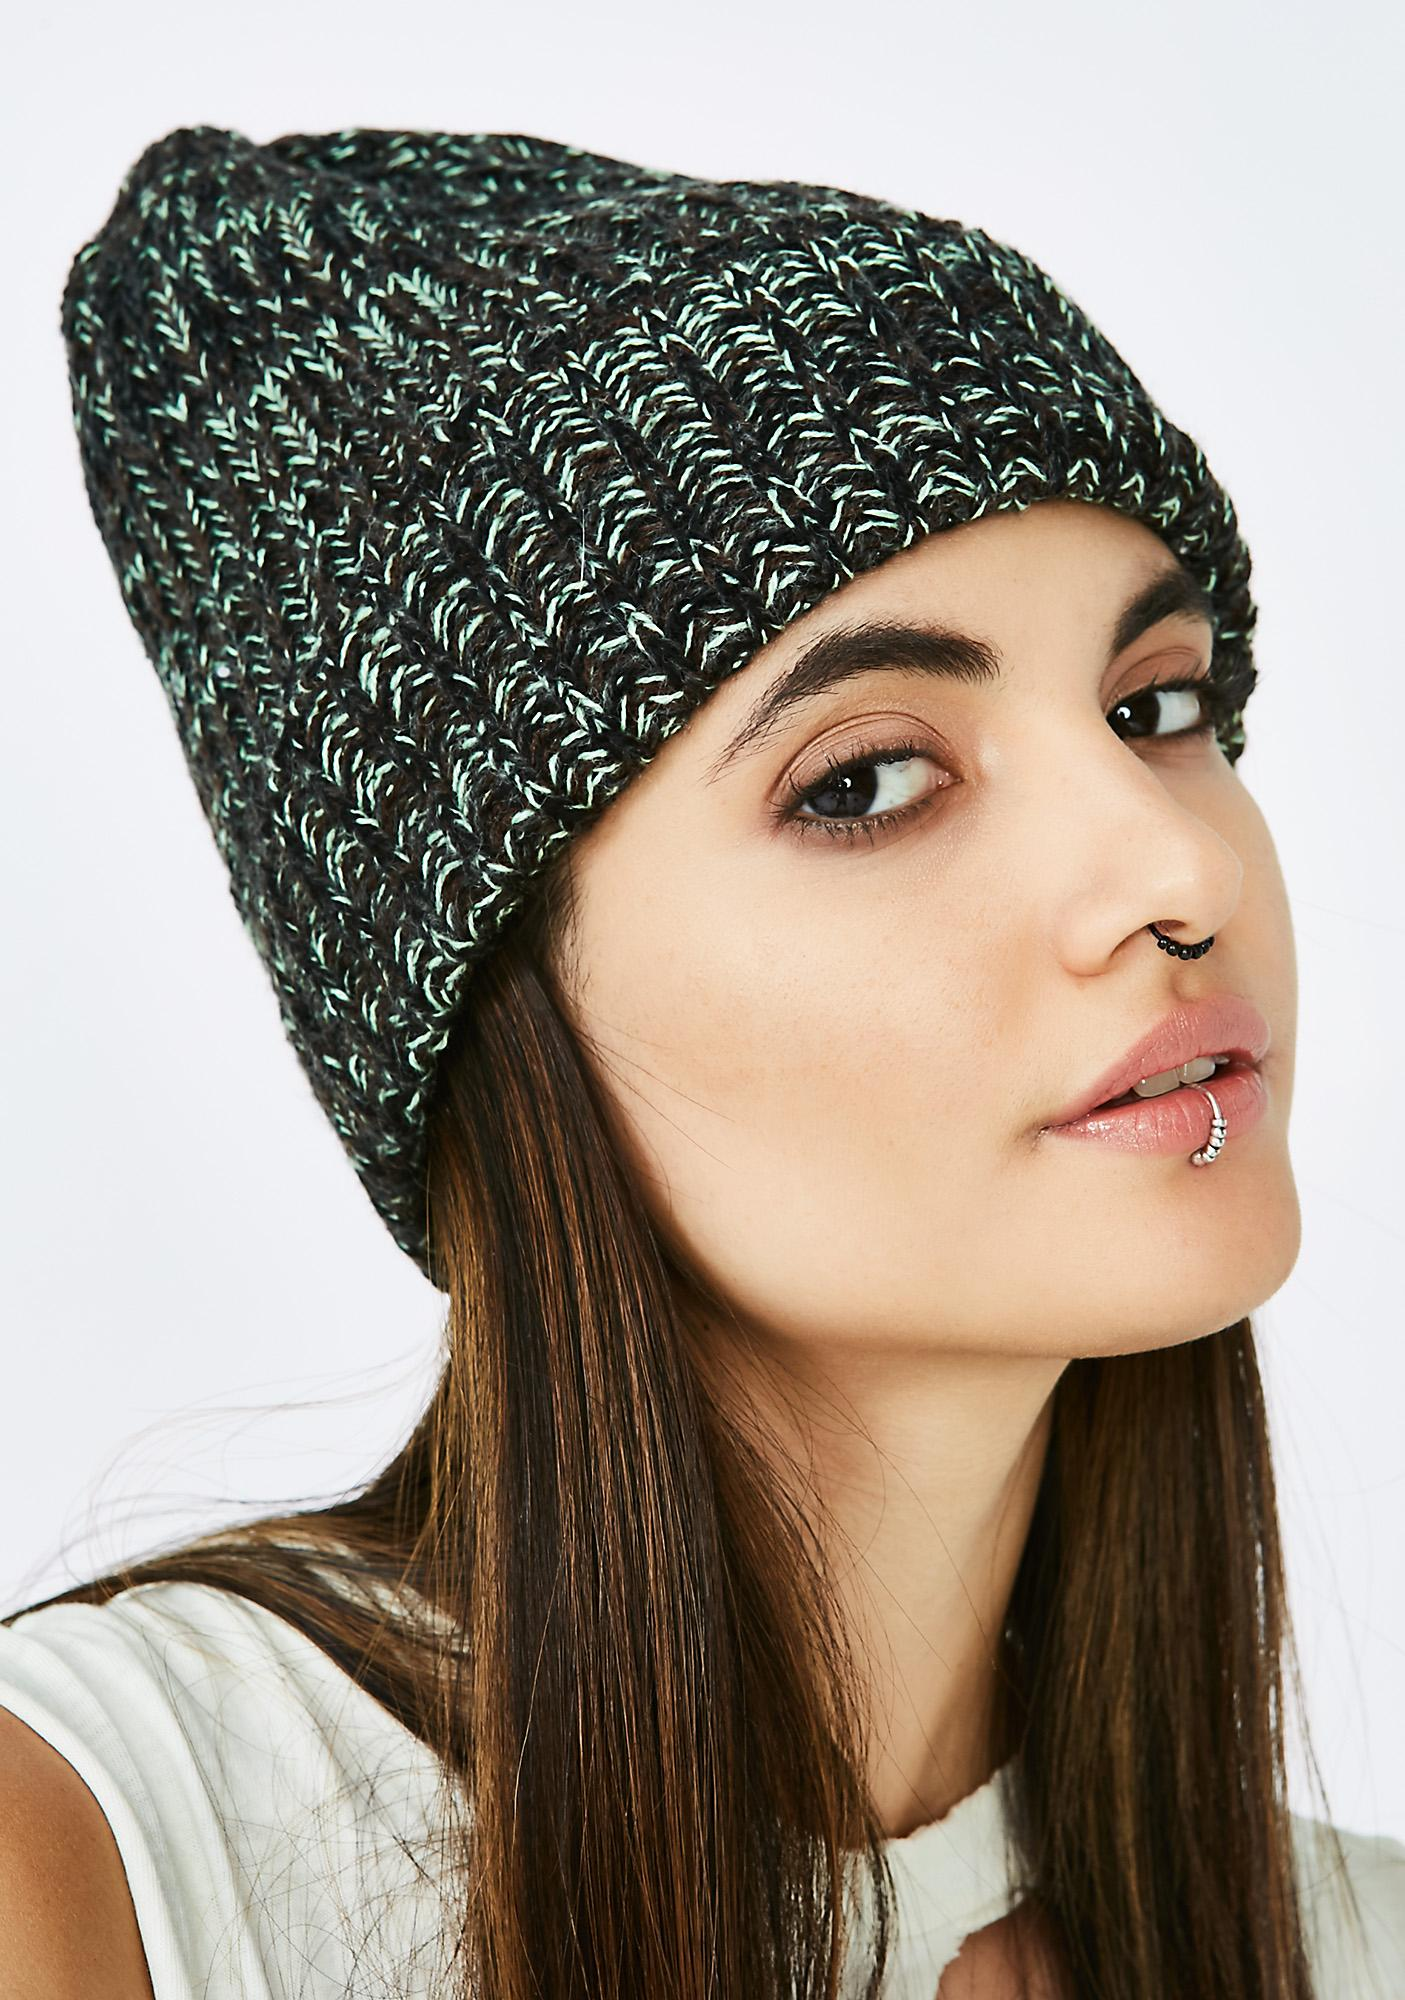 Mint Condition Knit Beanie